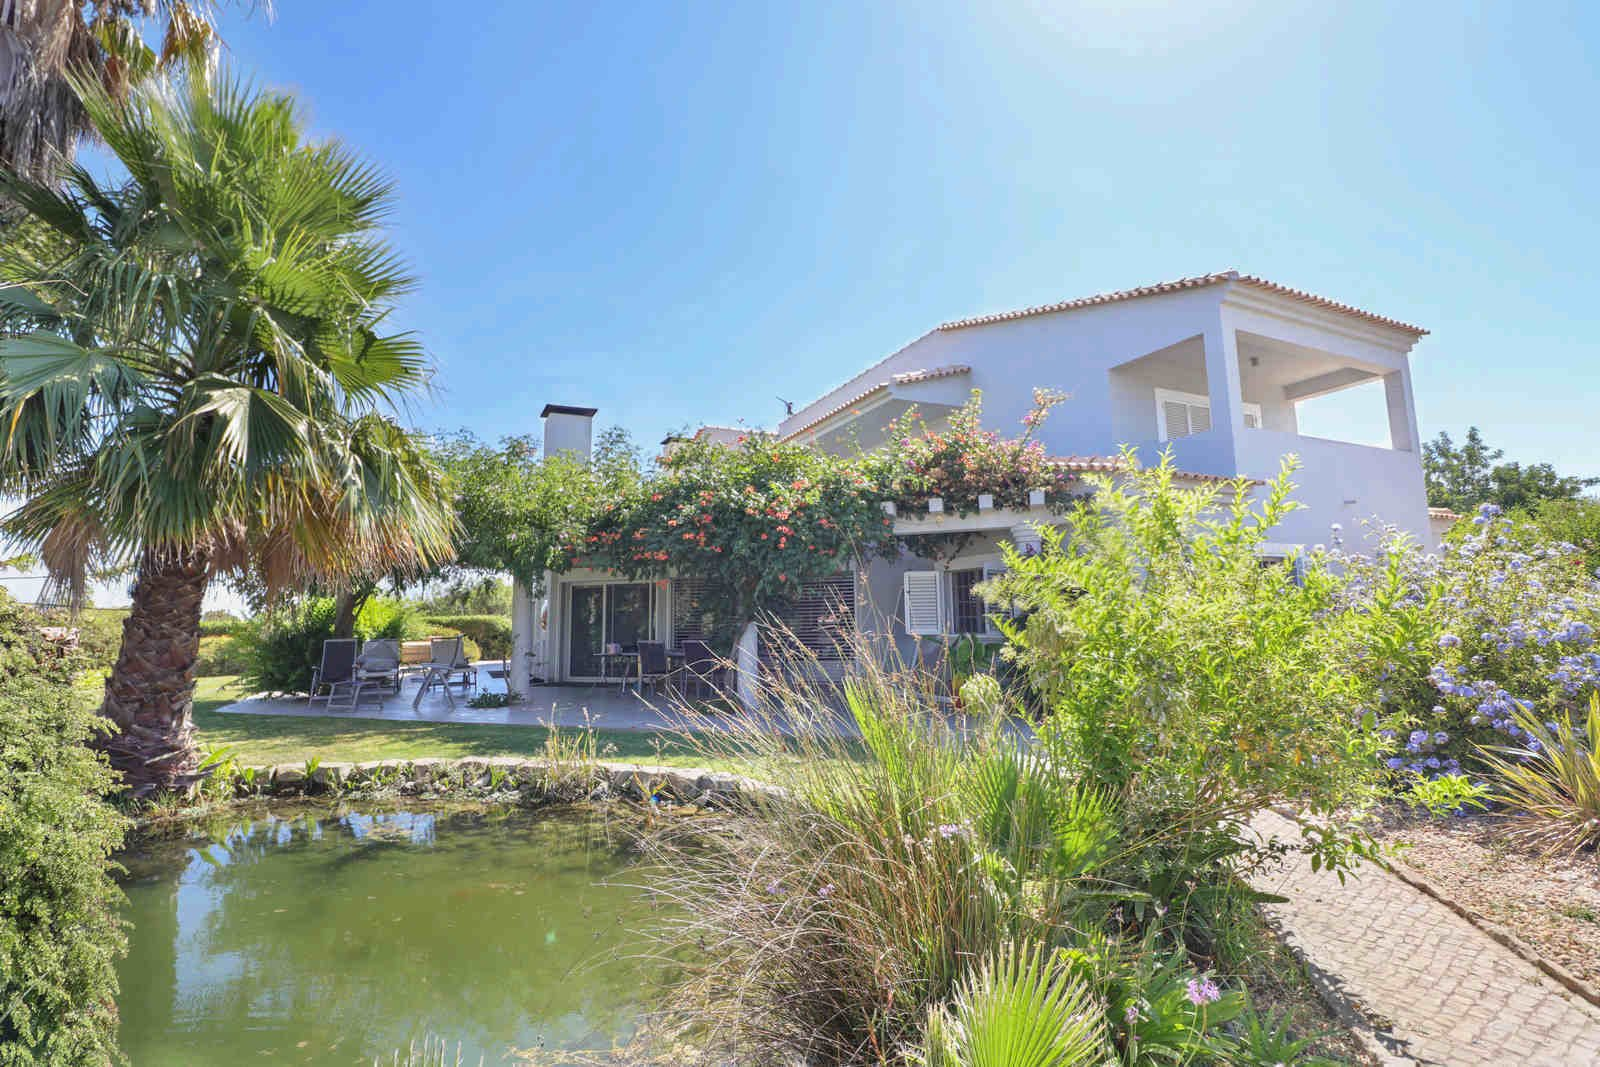 4 Bedroom Villa Almancil, Central Algarve Ref